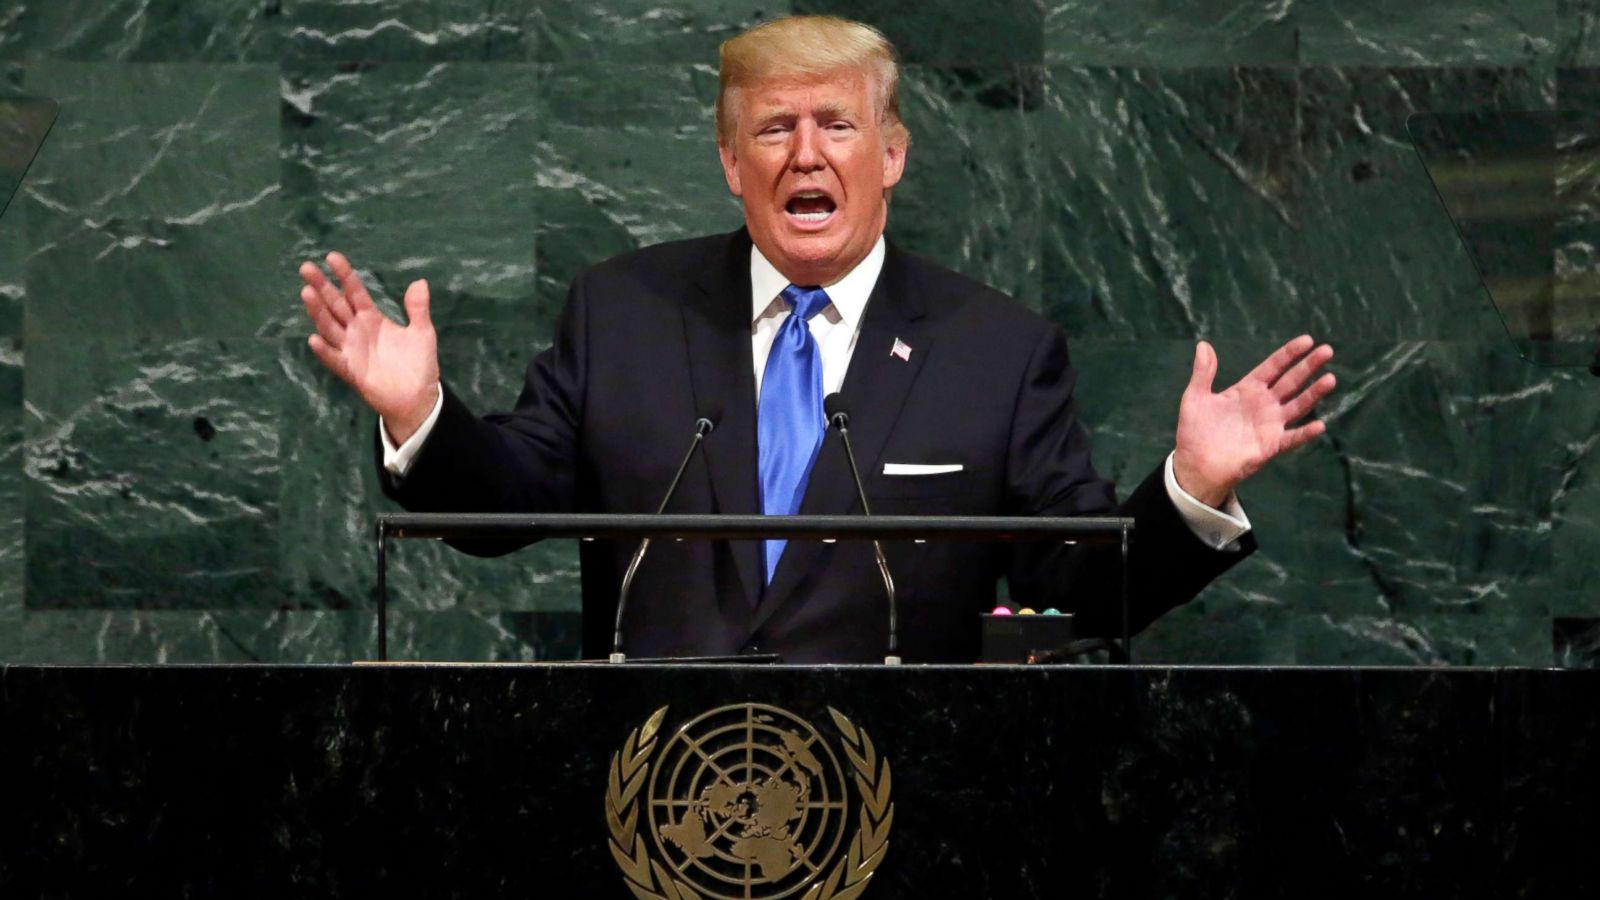 abcnews.go.com - Jordyn Phelps - What to expect from President Trump at the UN General Assembly